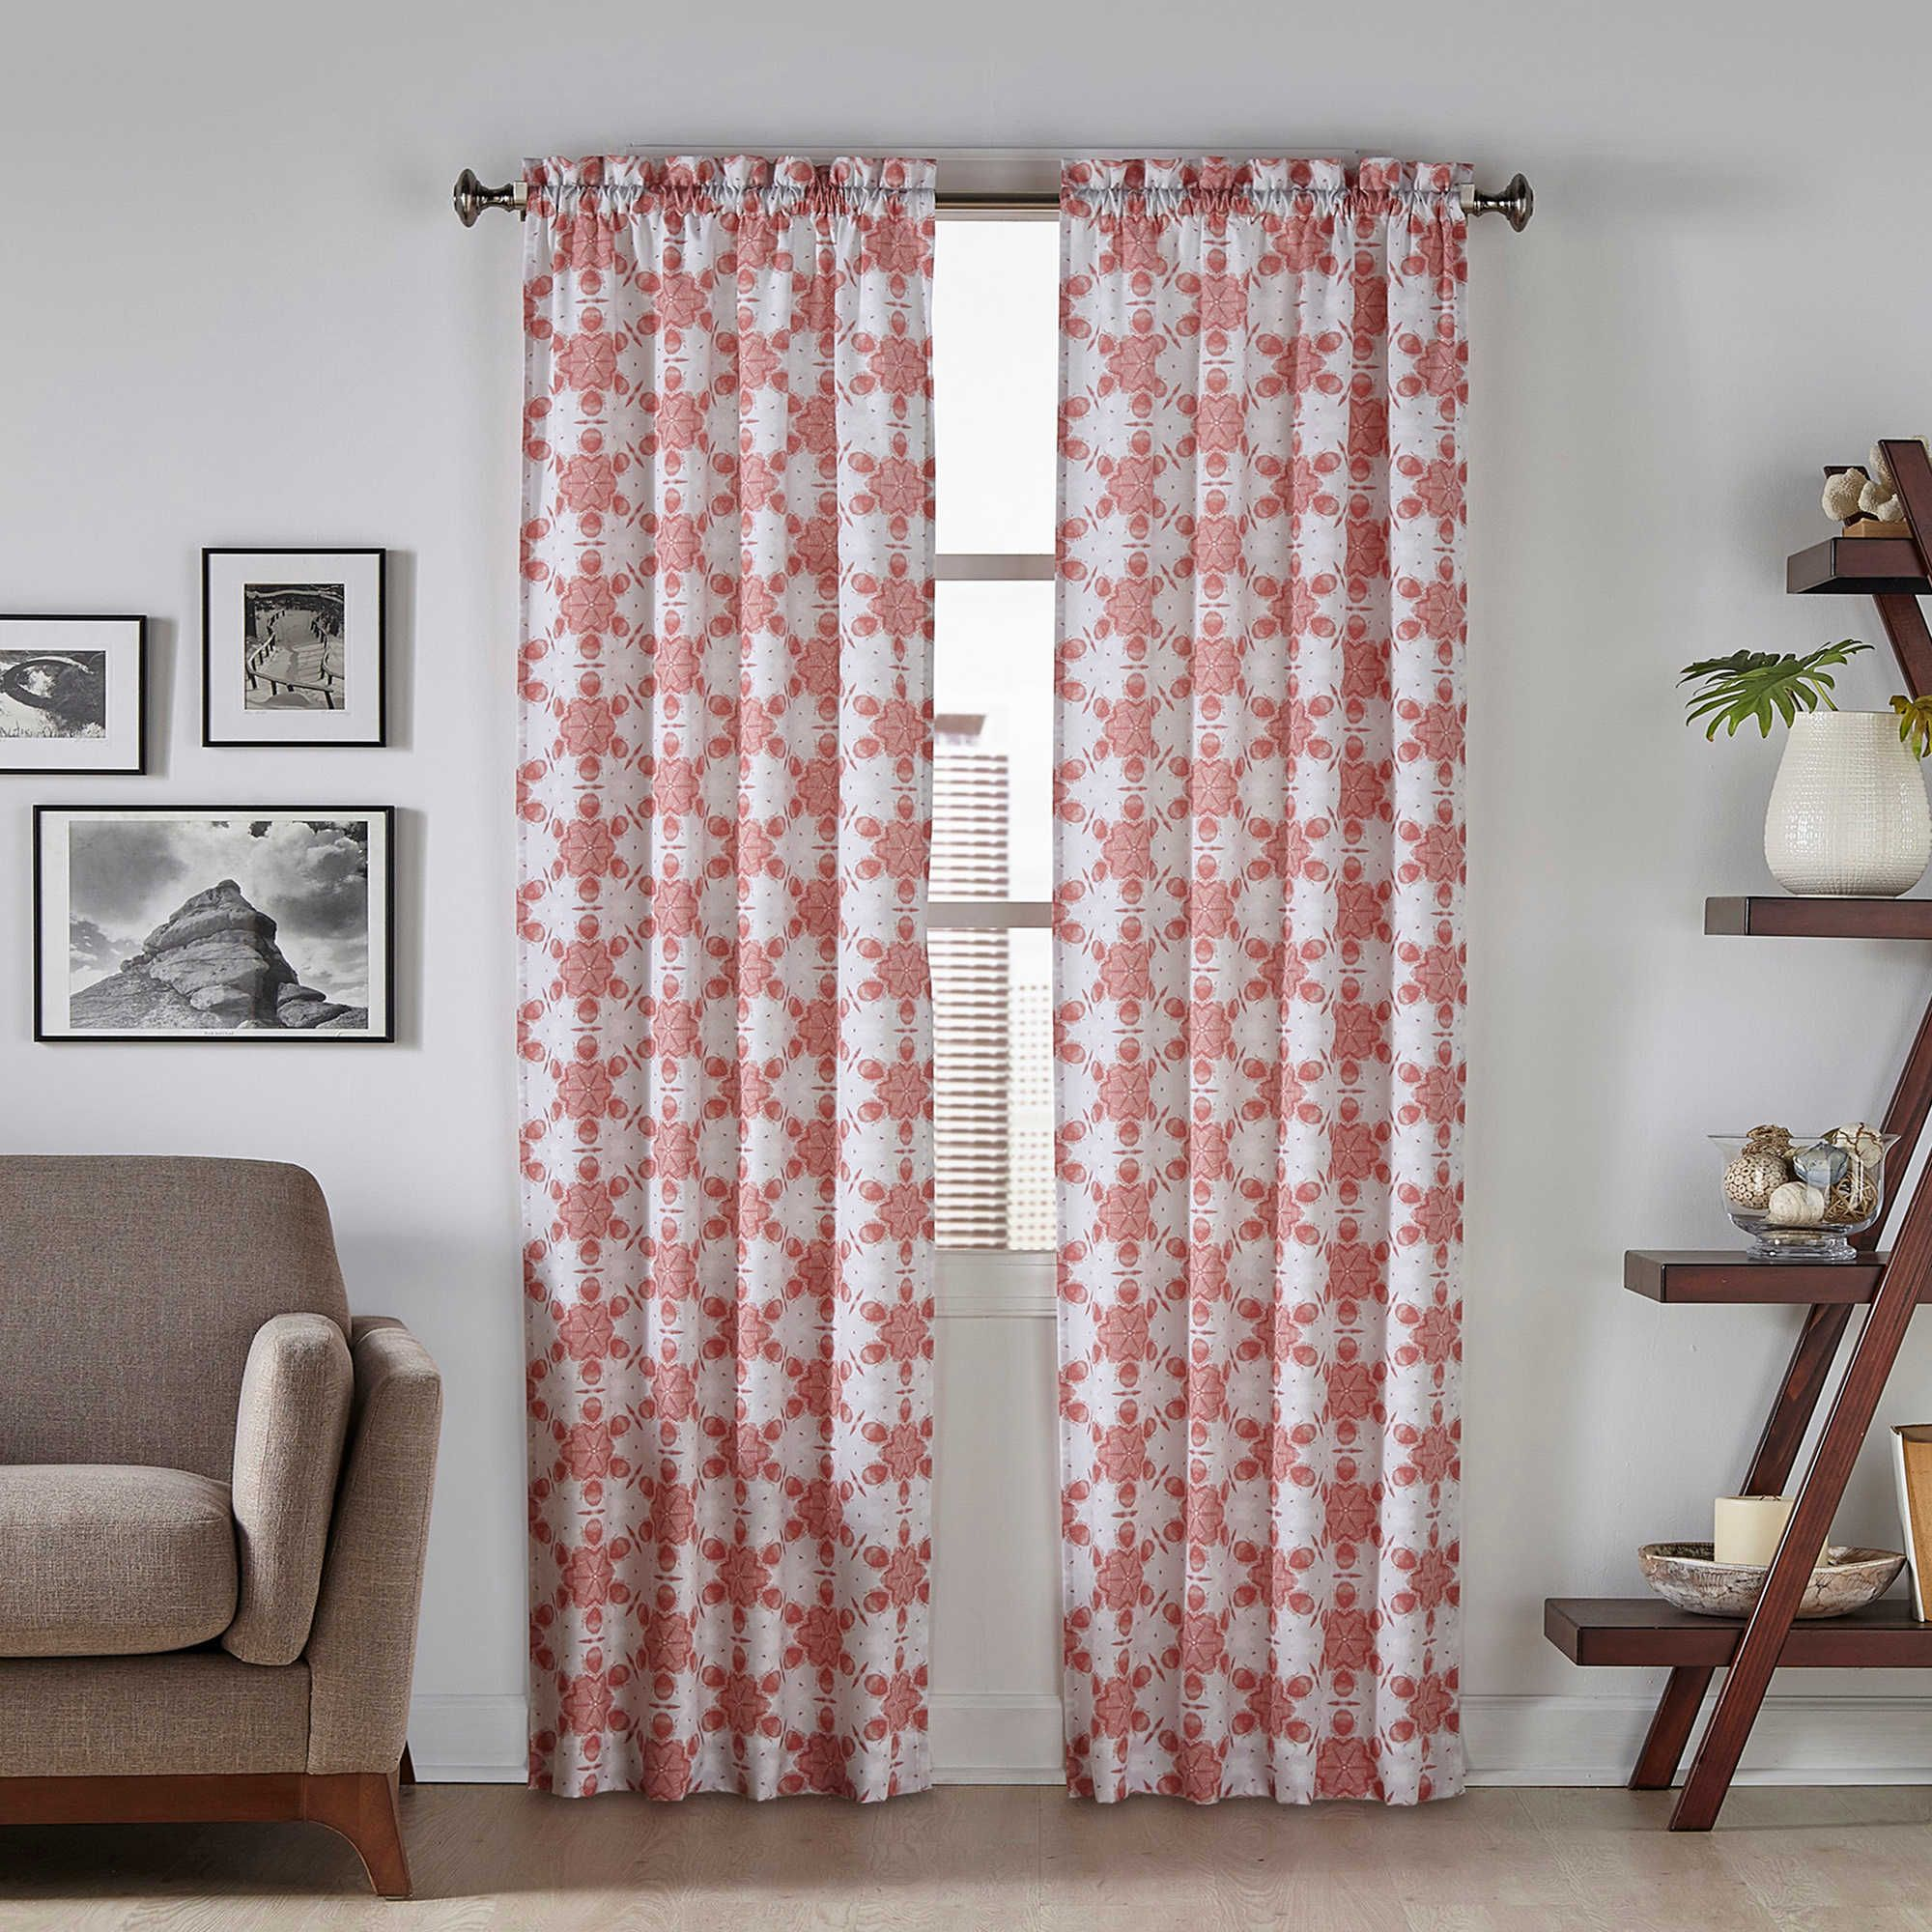 Pairs To Go Kesey Rod Pocket Window Curtain Panel Pair Rod